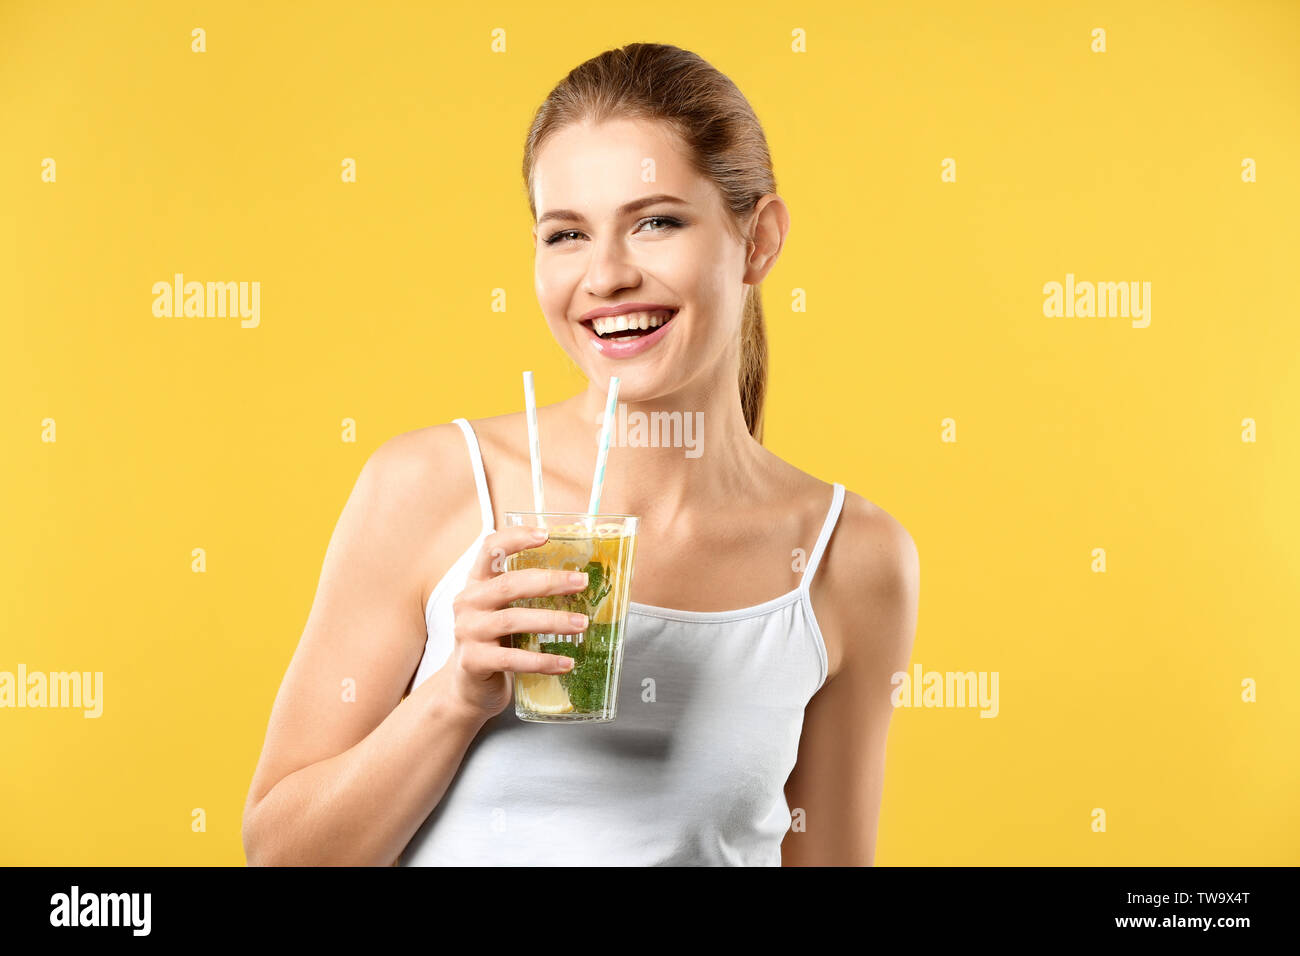 Beautiful young woman with glass of lemonade on color background - Stock Image